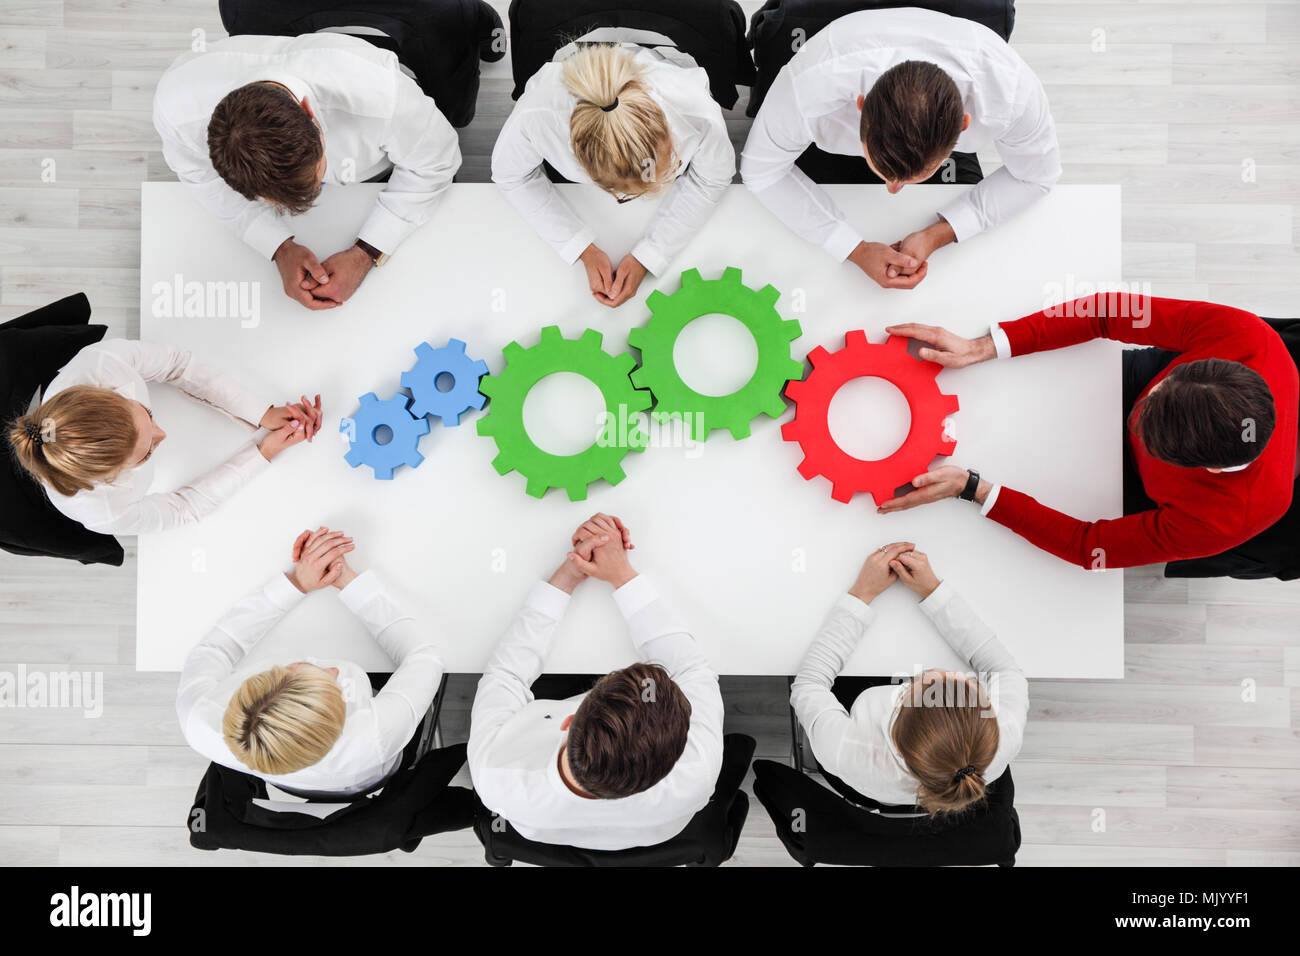 Business problem solution, mechanism of business, teamwork concept, business team sitting around white table with cogs - Stock Image